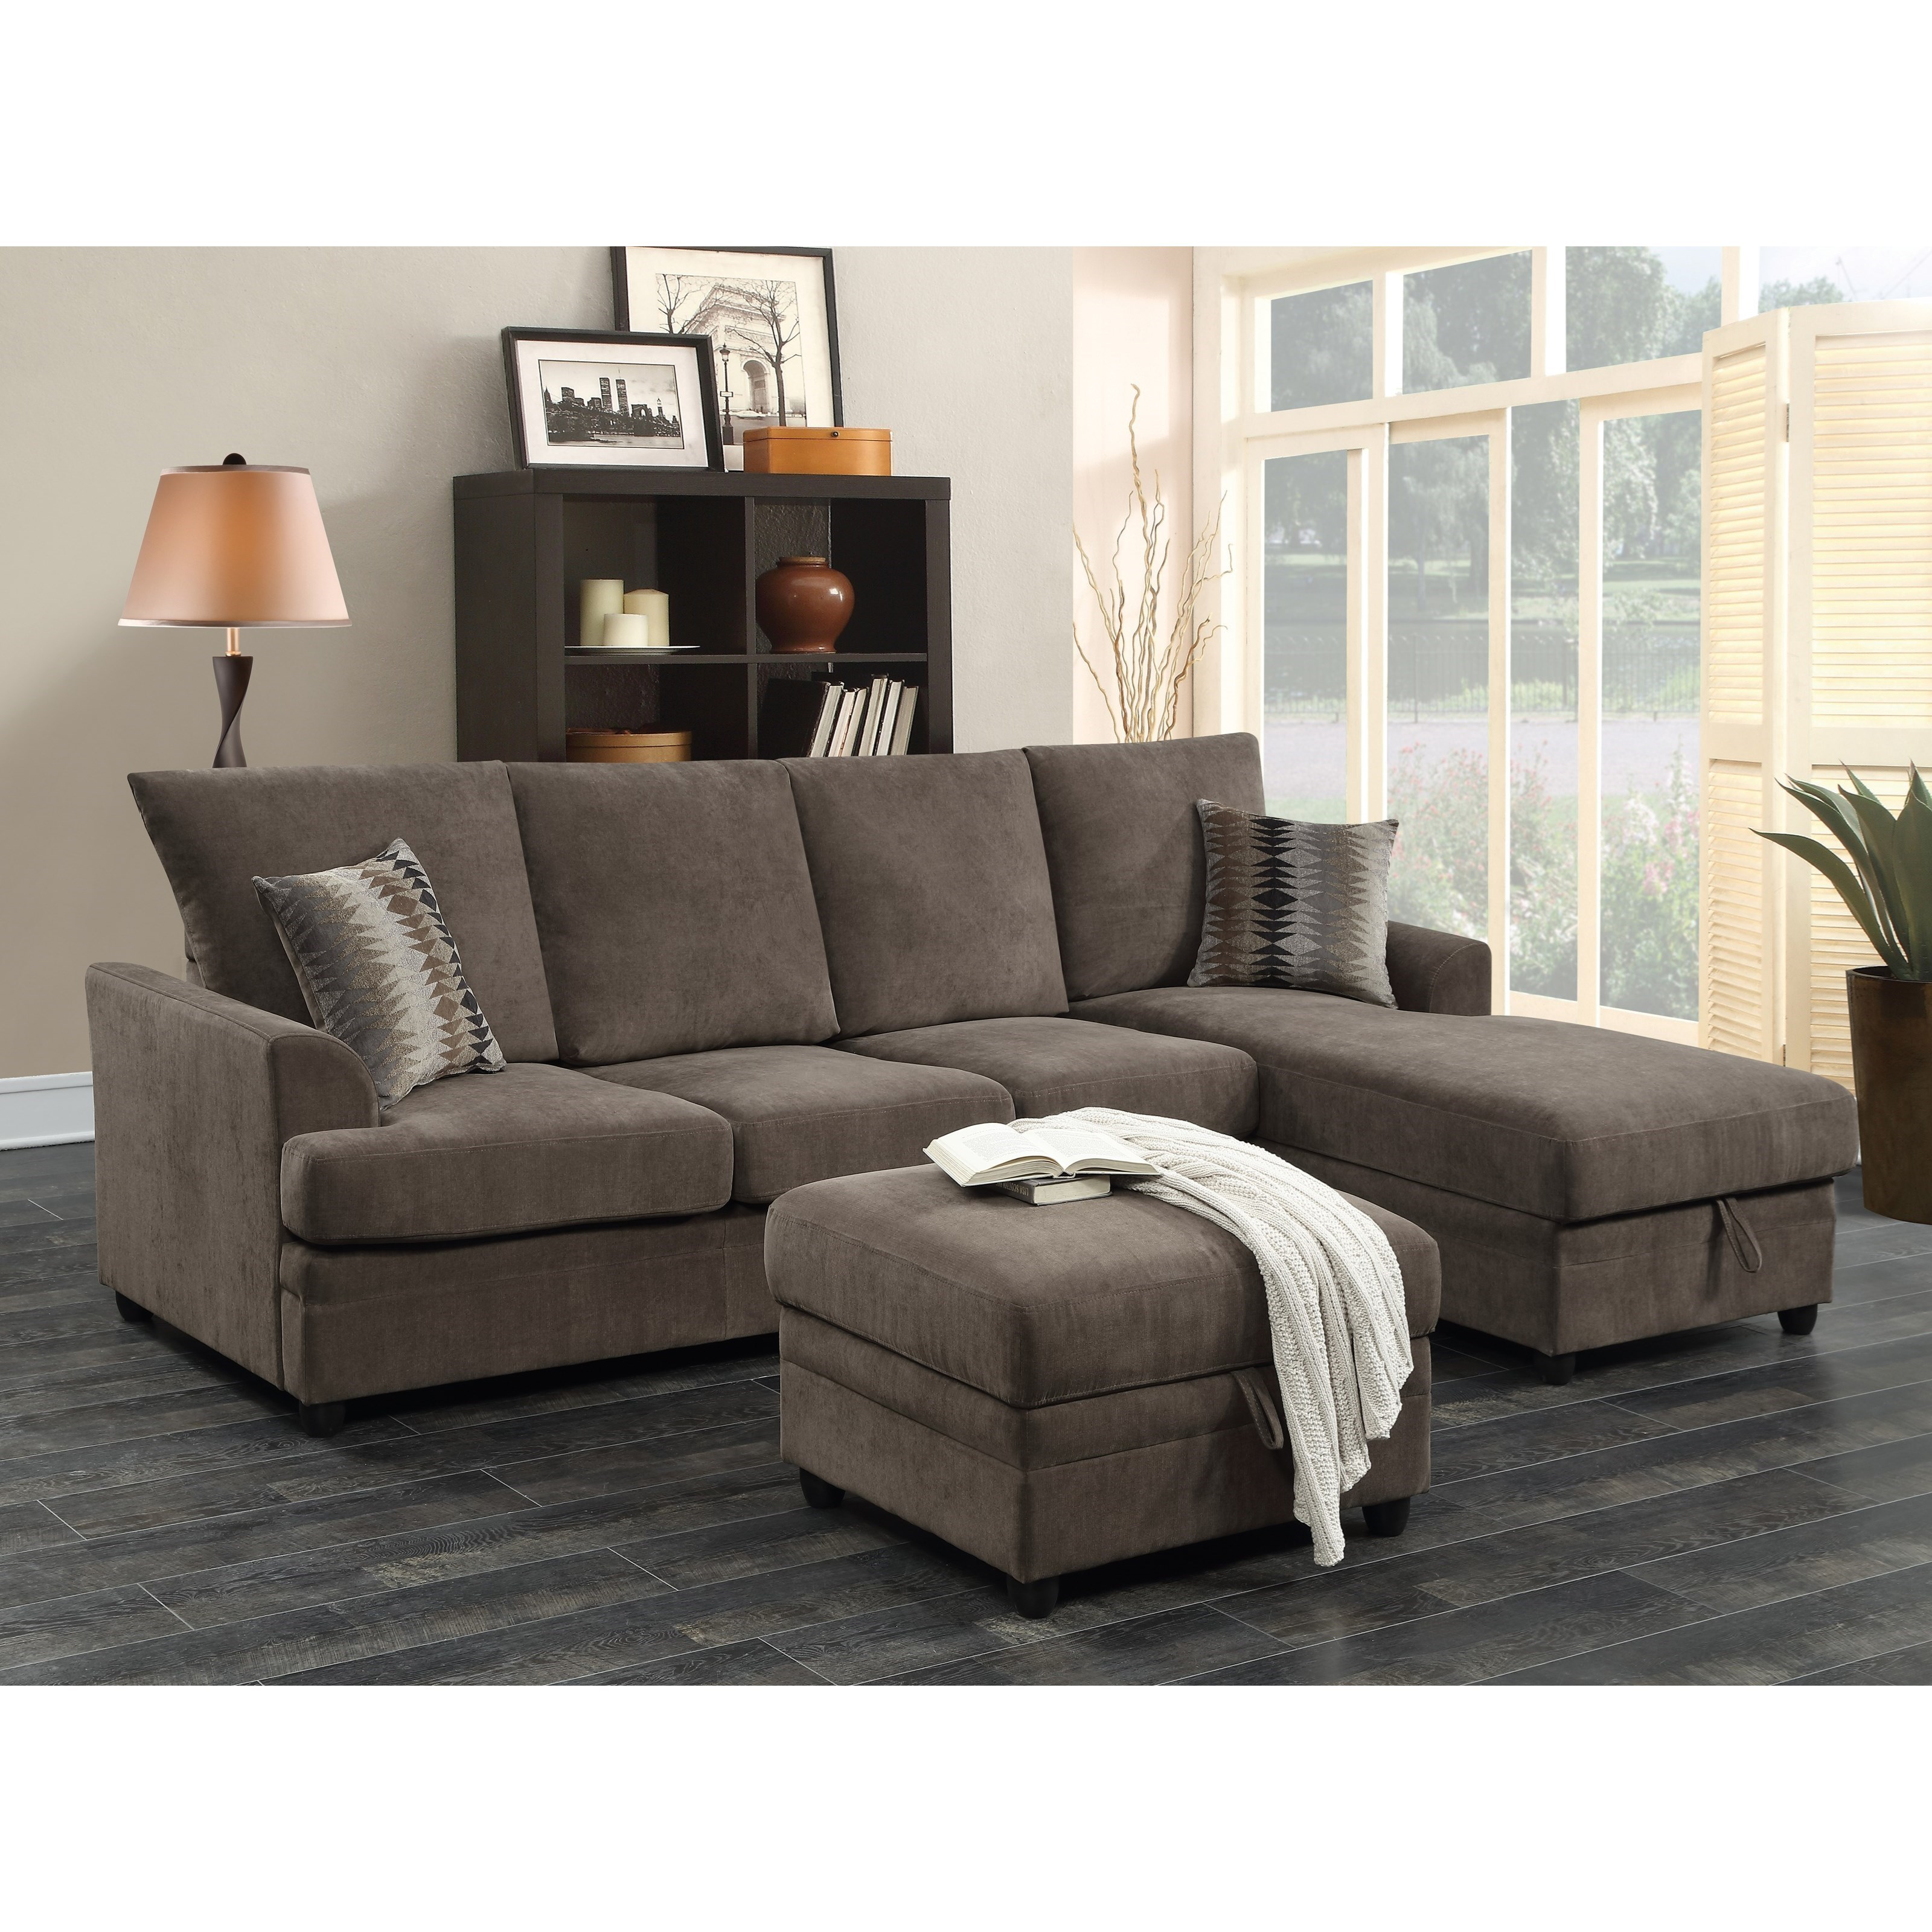 sc 1 st  Coaster - Find a Local Furniture Store with Coaster Fine Furniture : furniture stores sectionals - Sectionals, Sofas & Couches